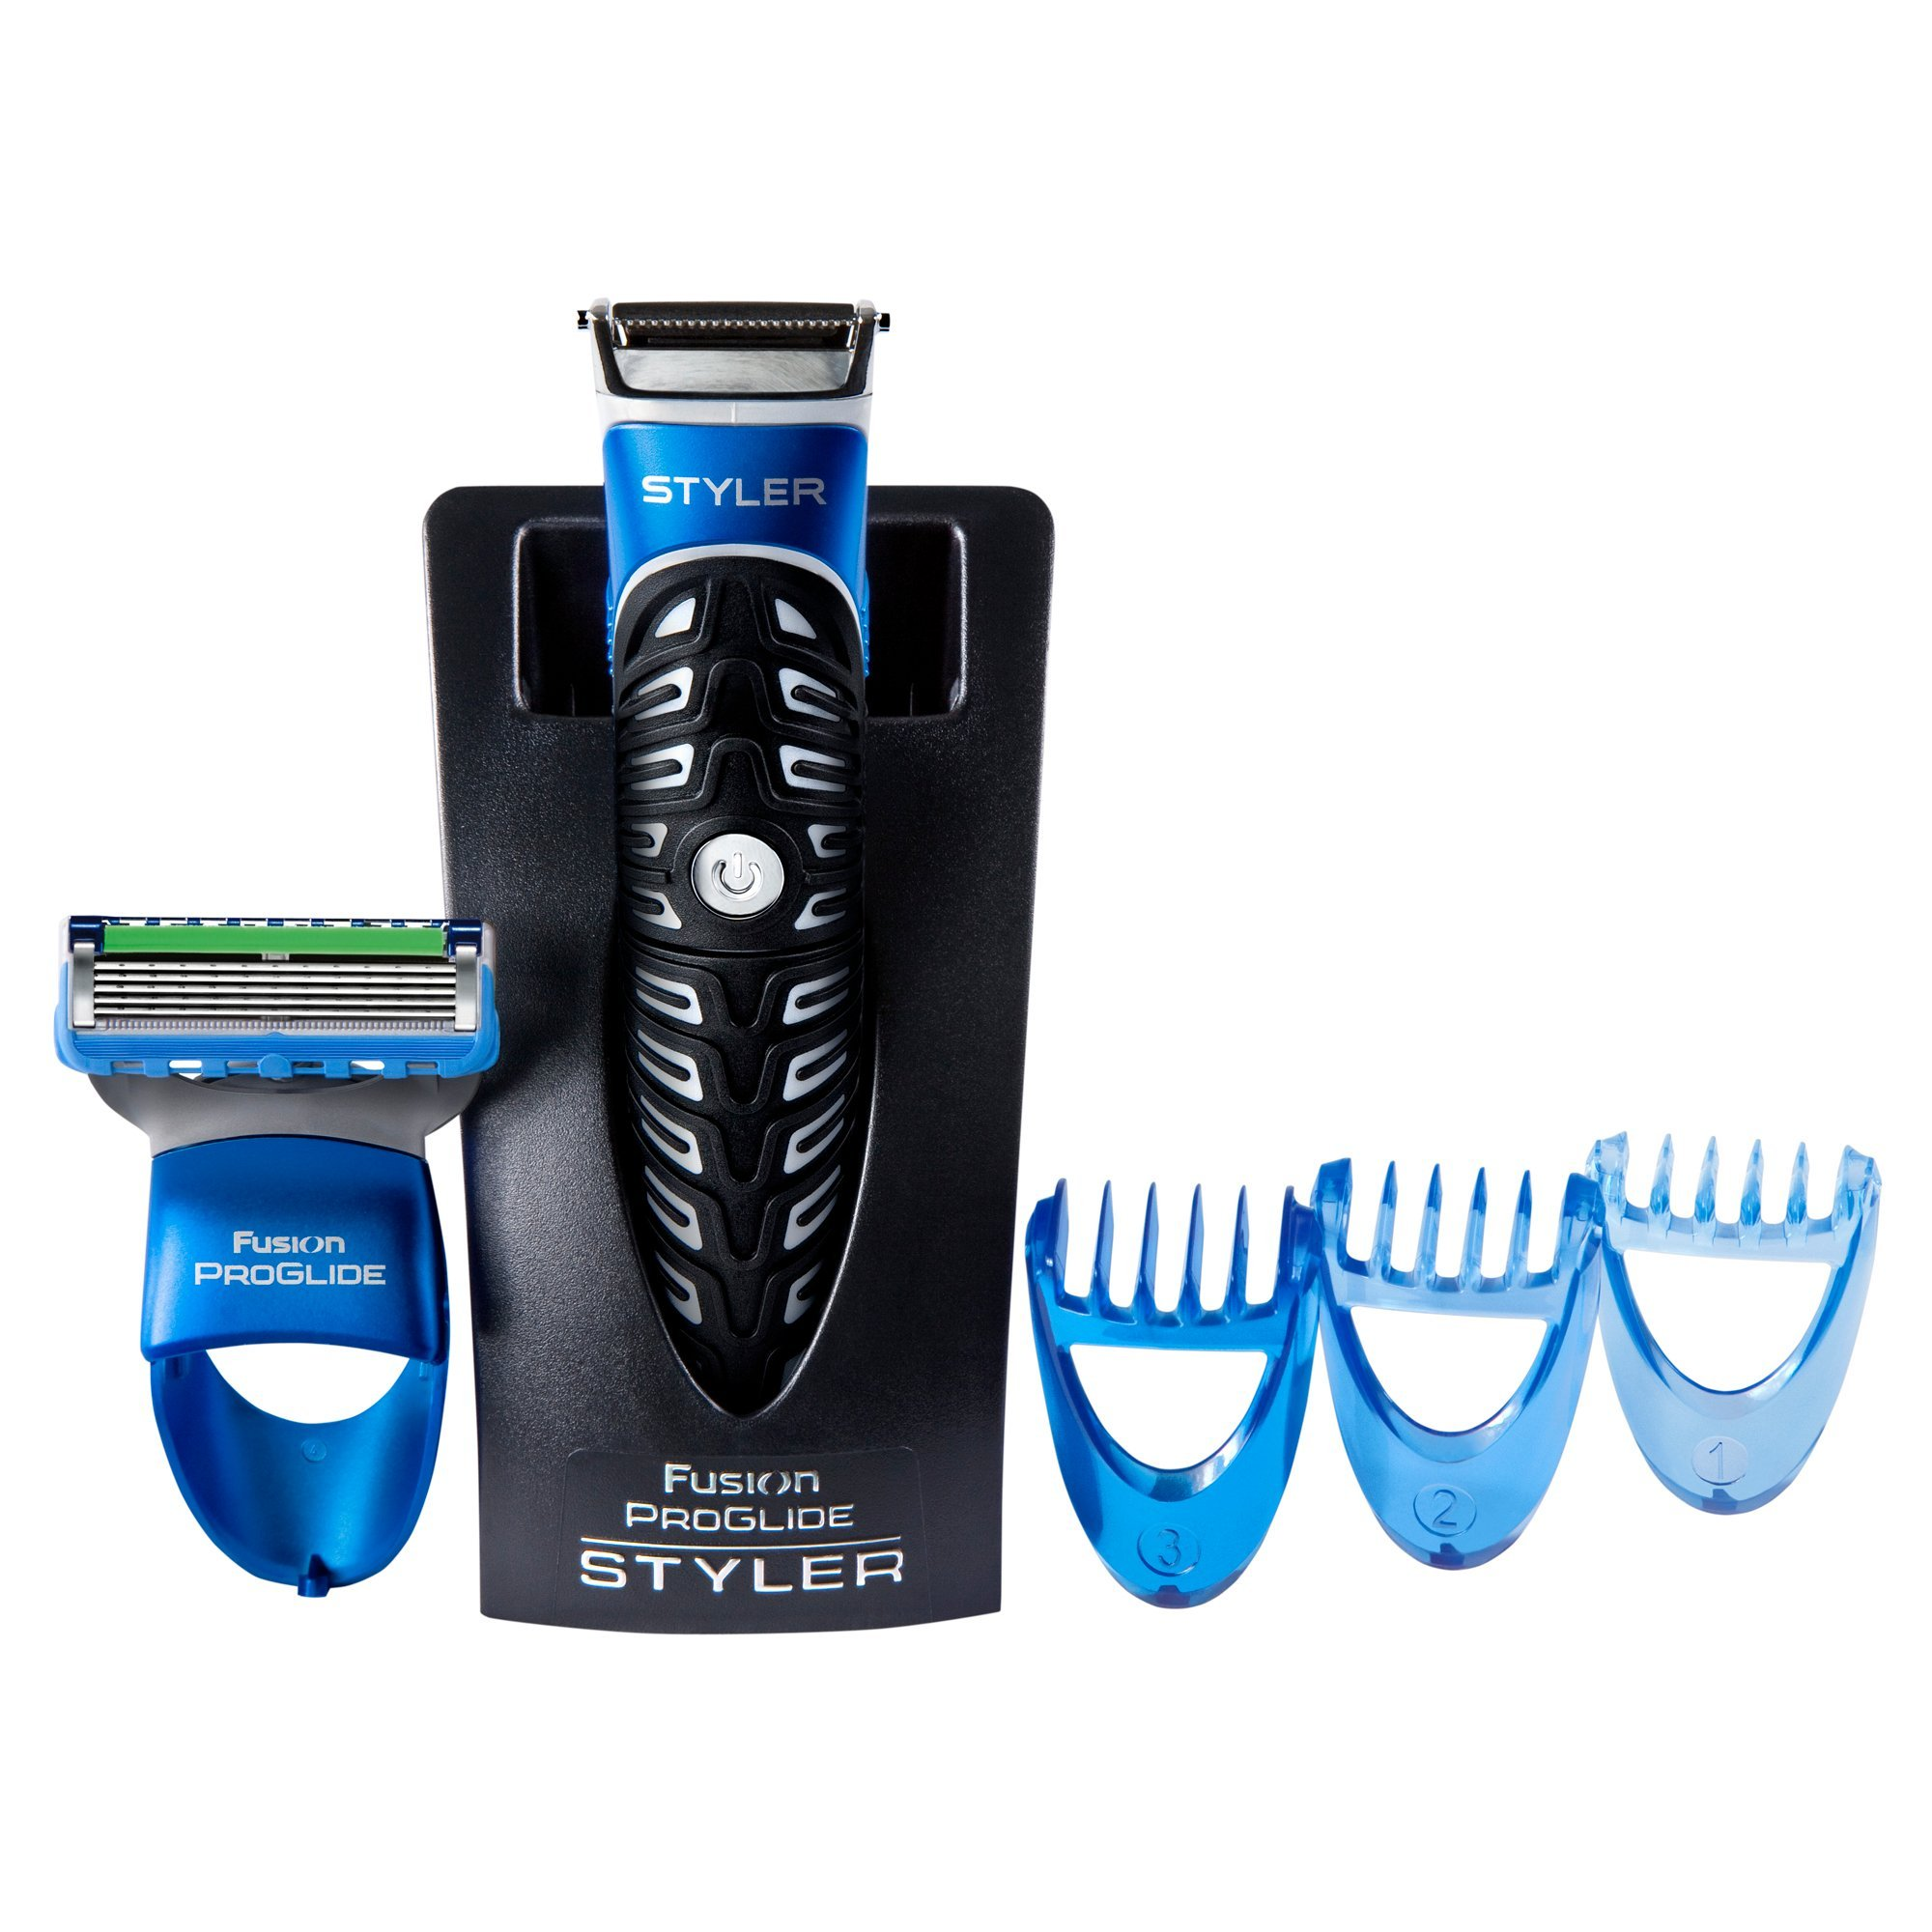 Image of Gillette Fusion All Purpose 3-in-1 Styler